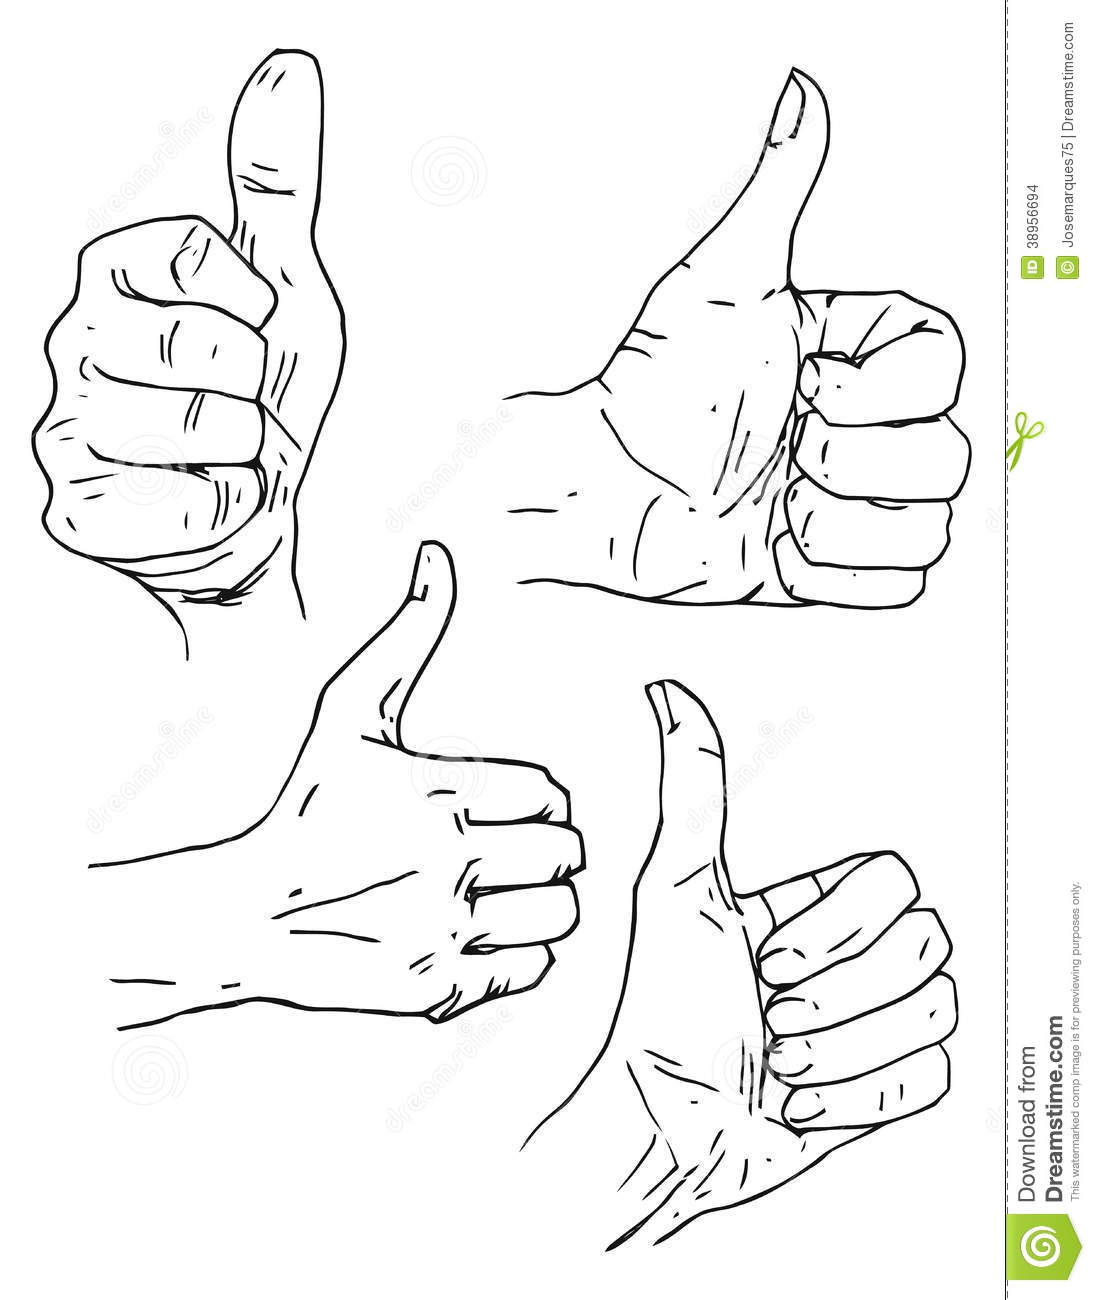 Thumbs Up Stock Vector